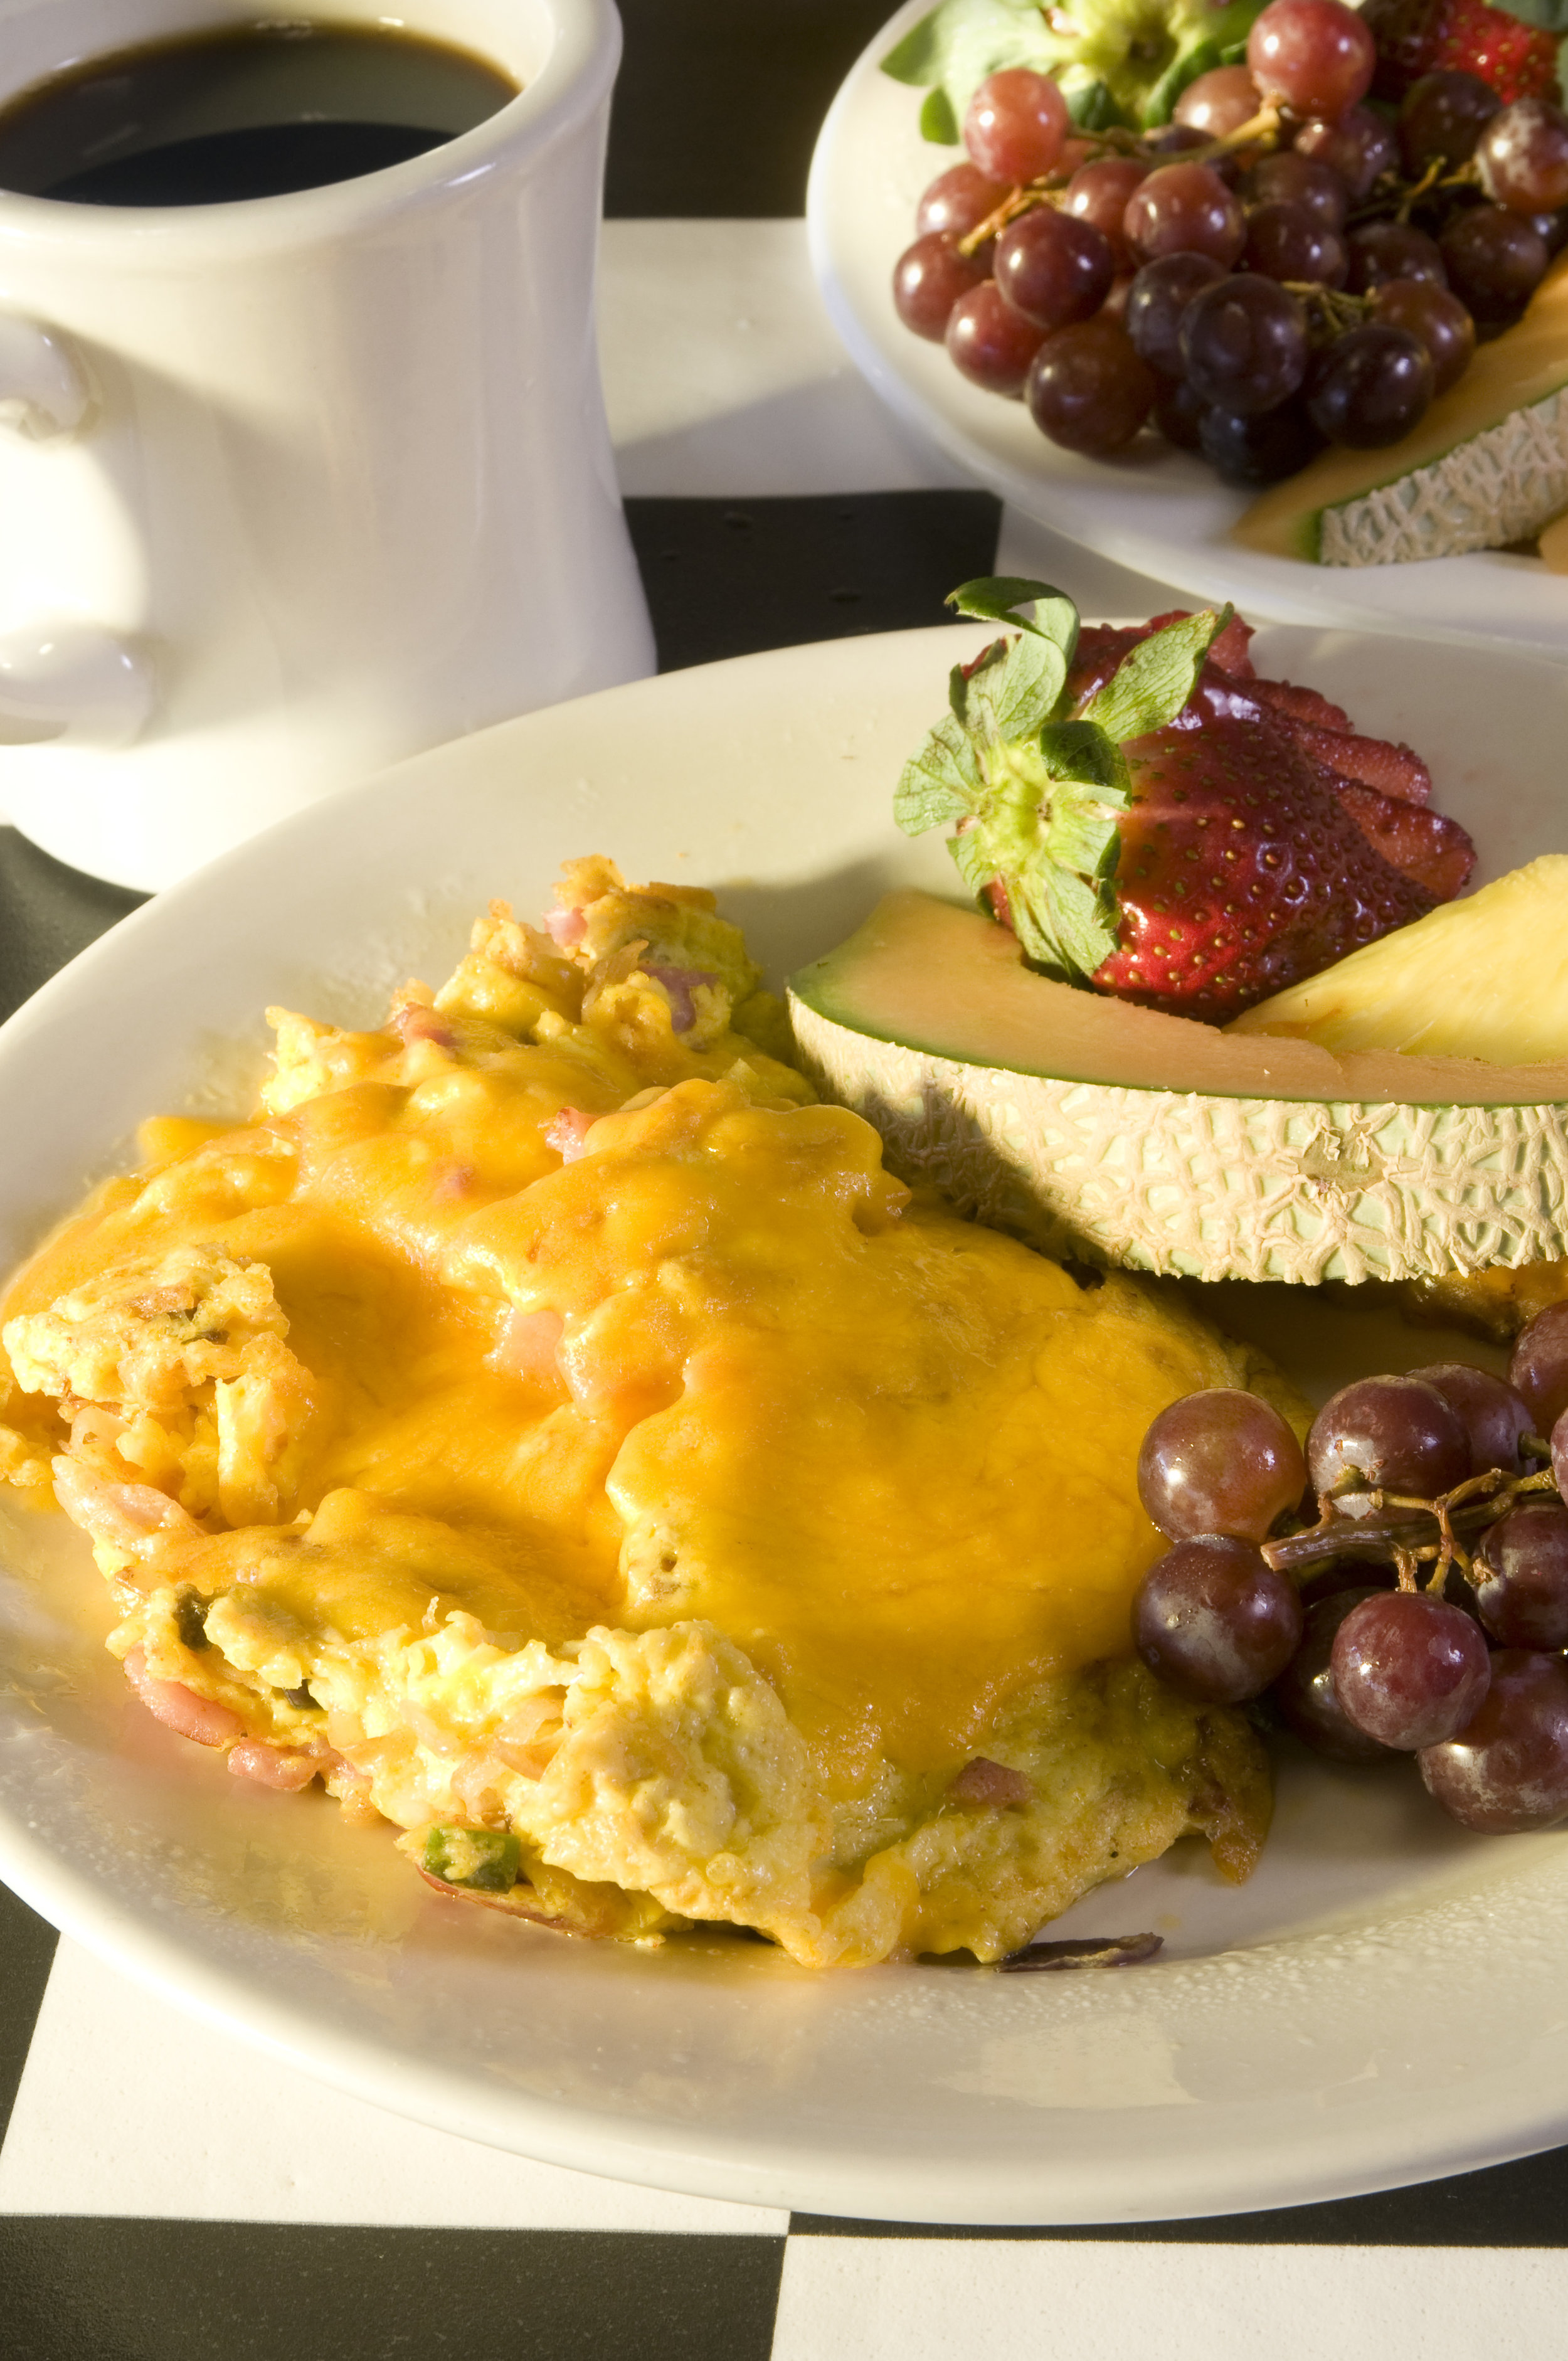 Plantation-cafe-and-Deli-Hilton-Head-Island-SC-Breakfast-04.jpg